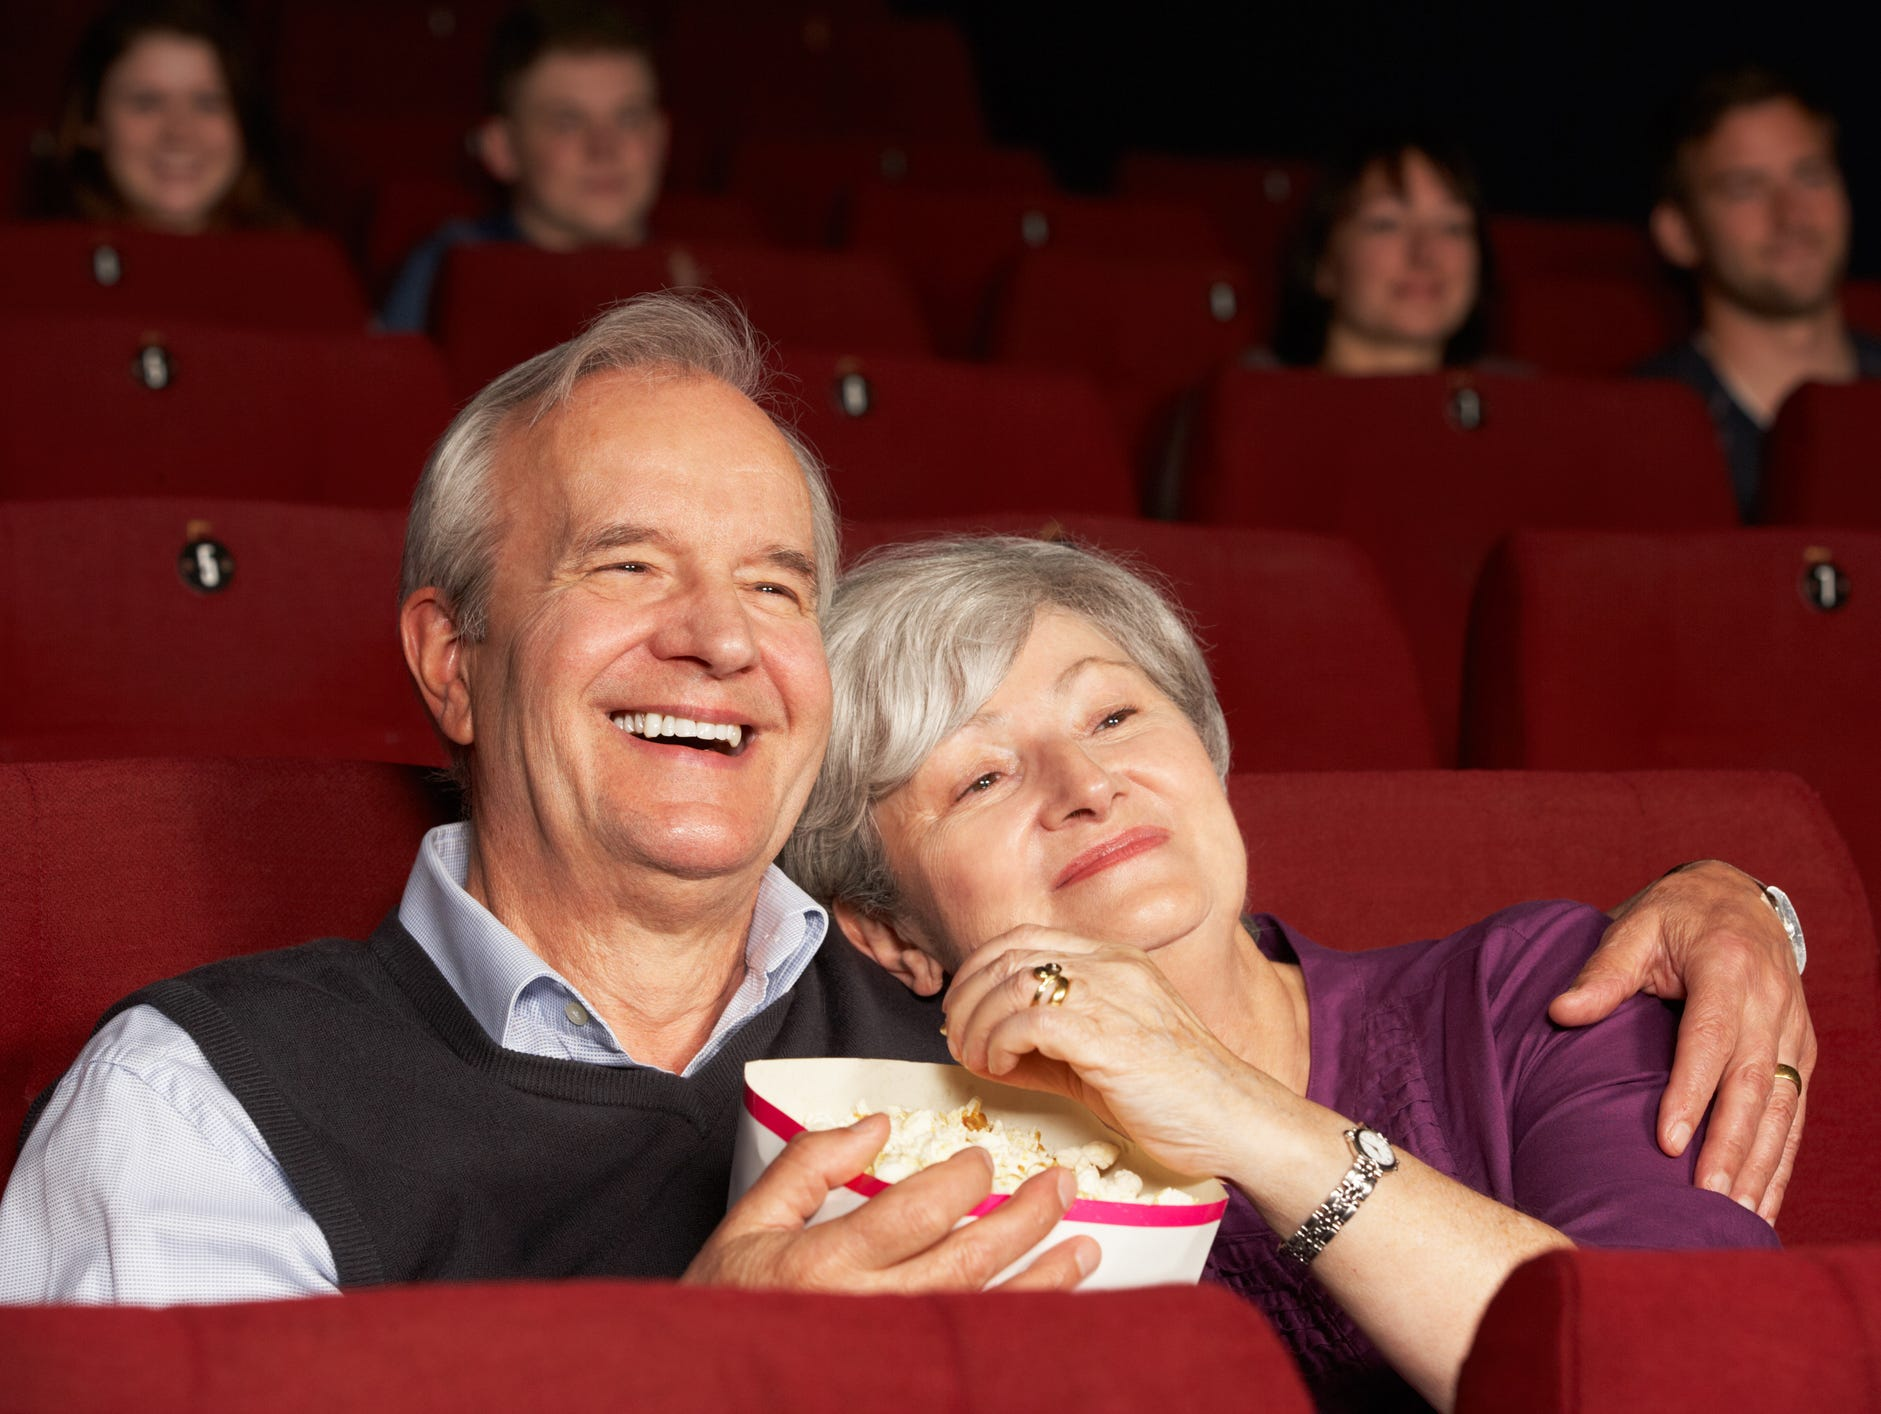 Date night's coming up! Purchase your movie tickets today and save.